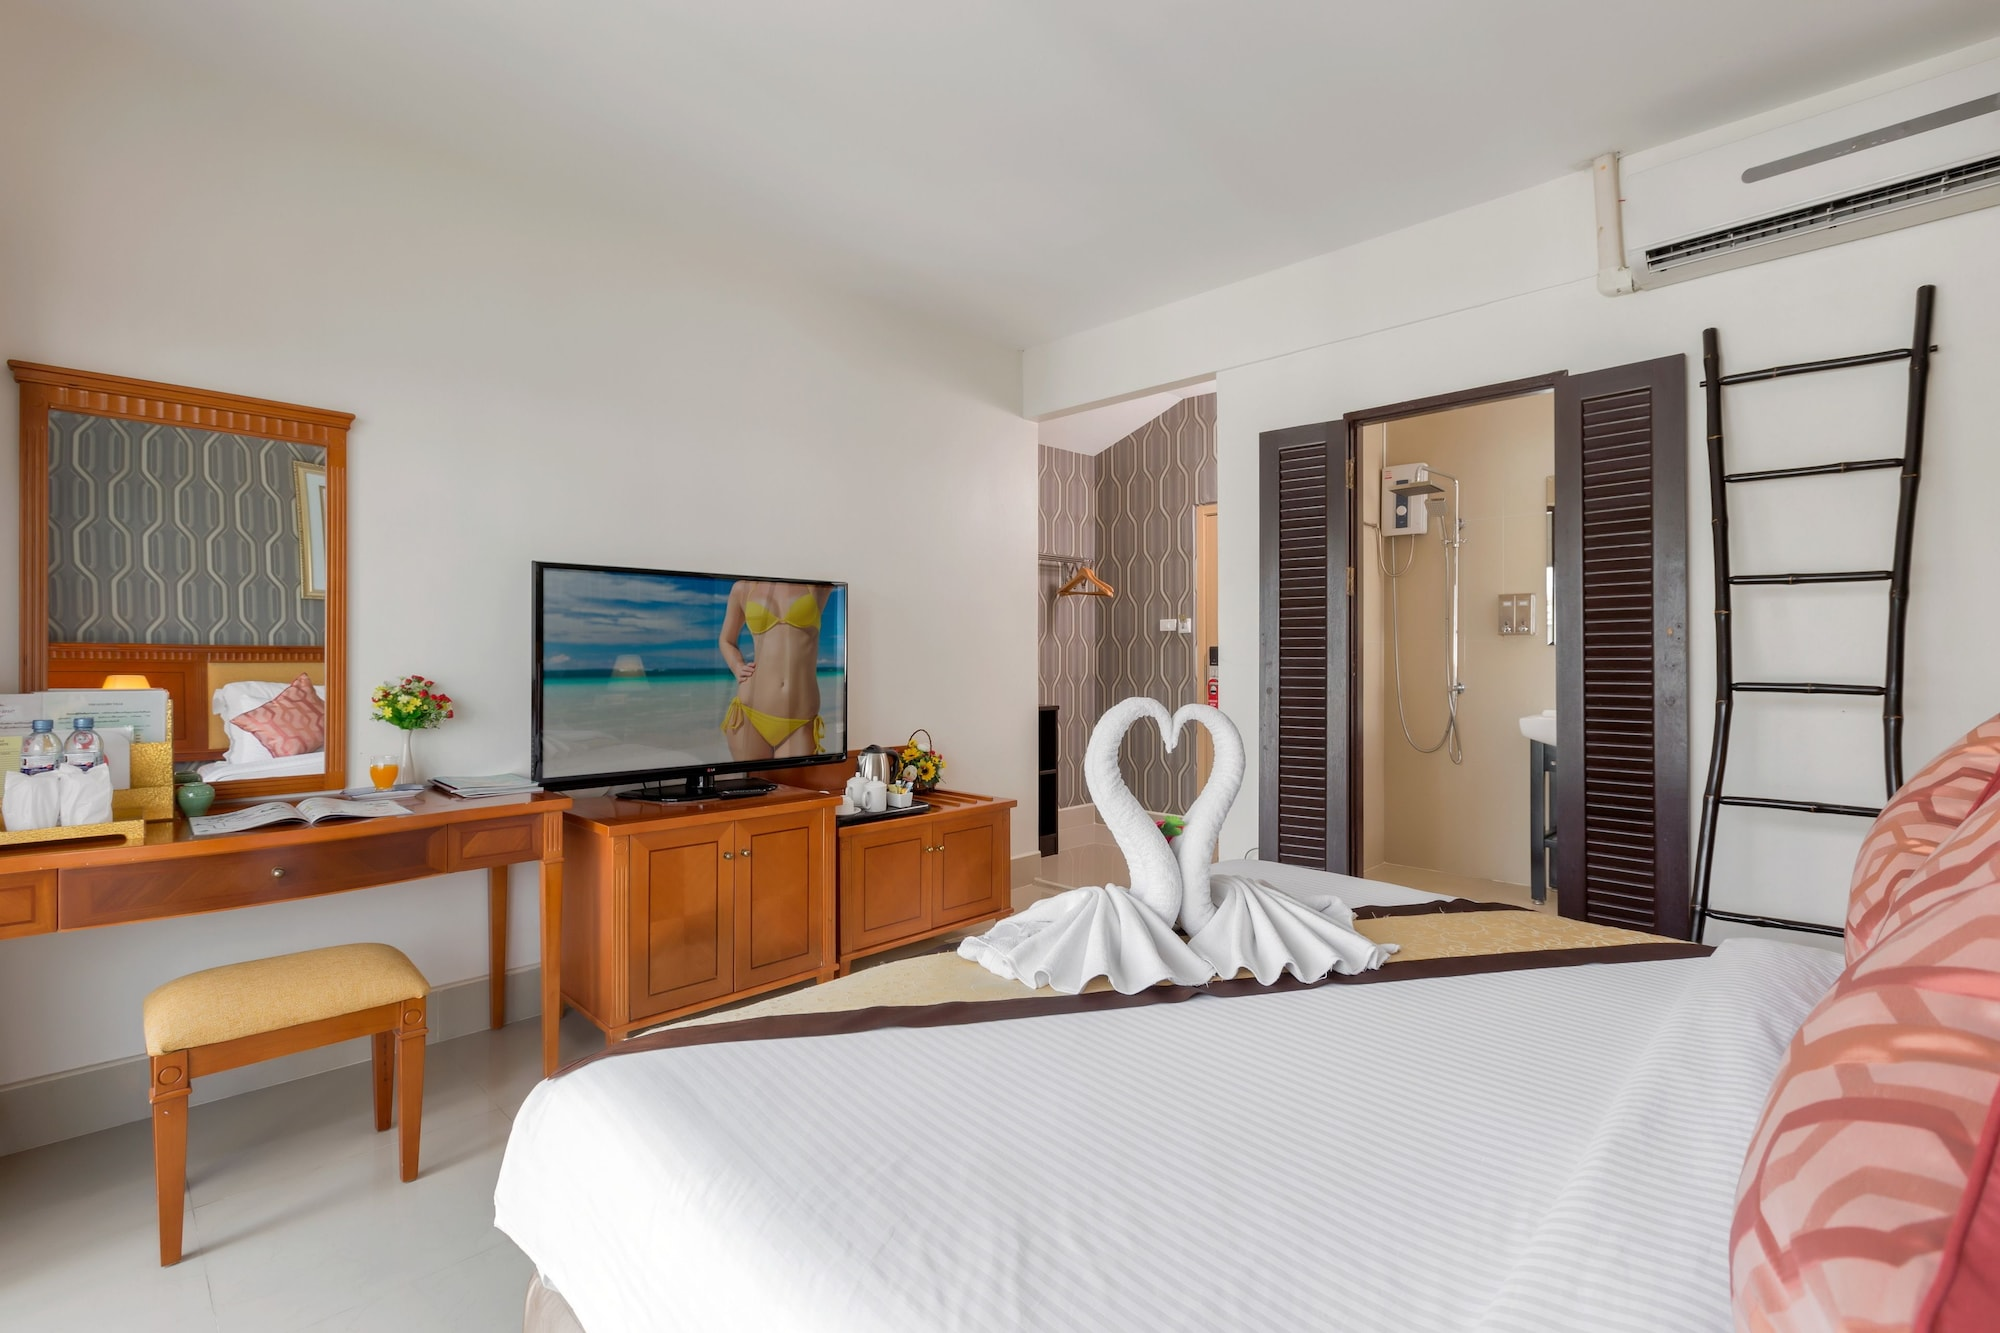 The Golden Ville Boutique Hotel & Spa, Pattaya